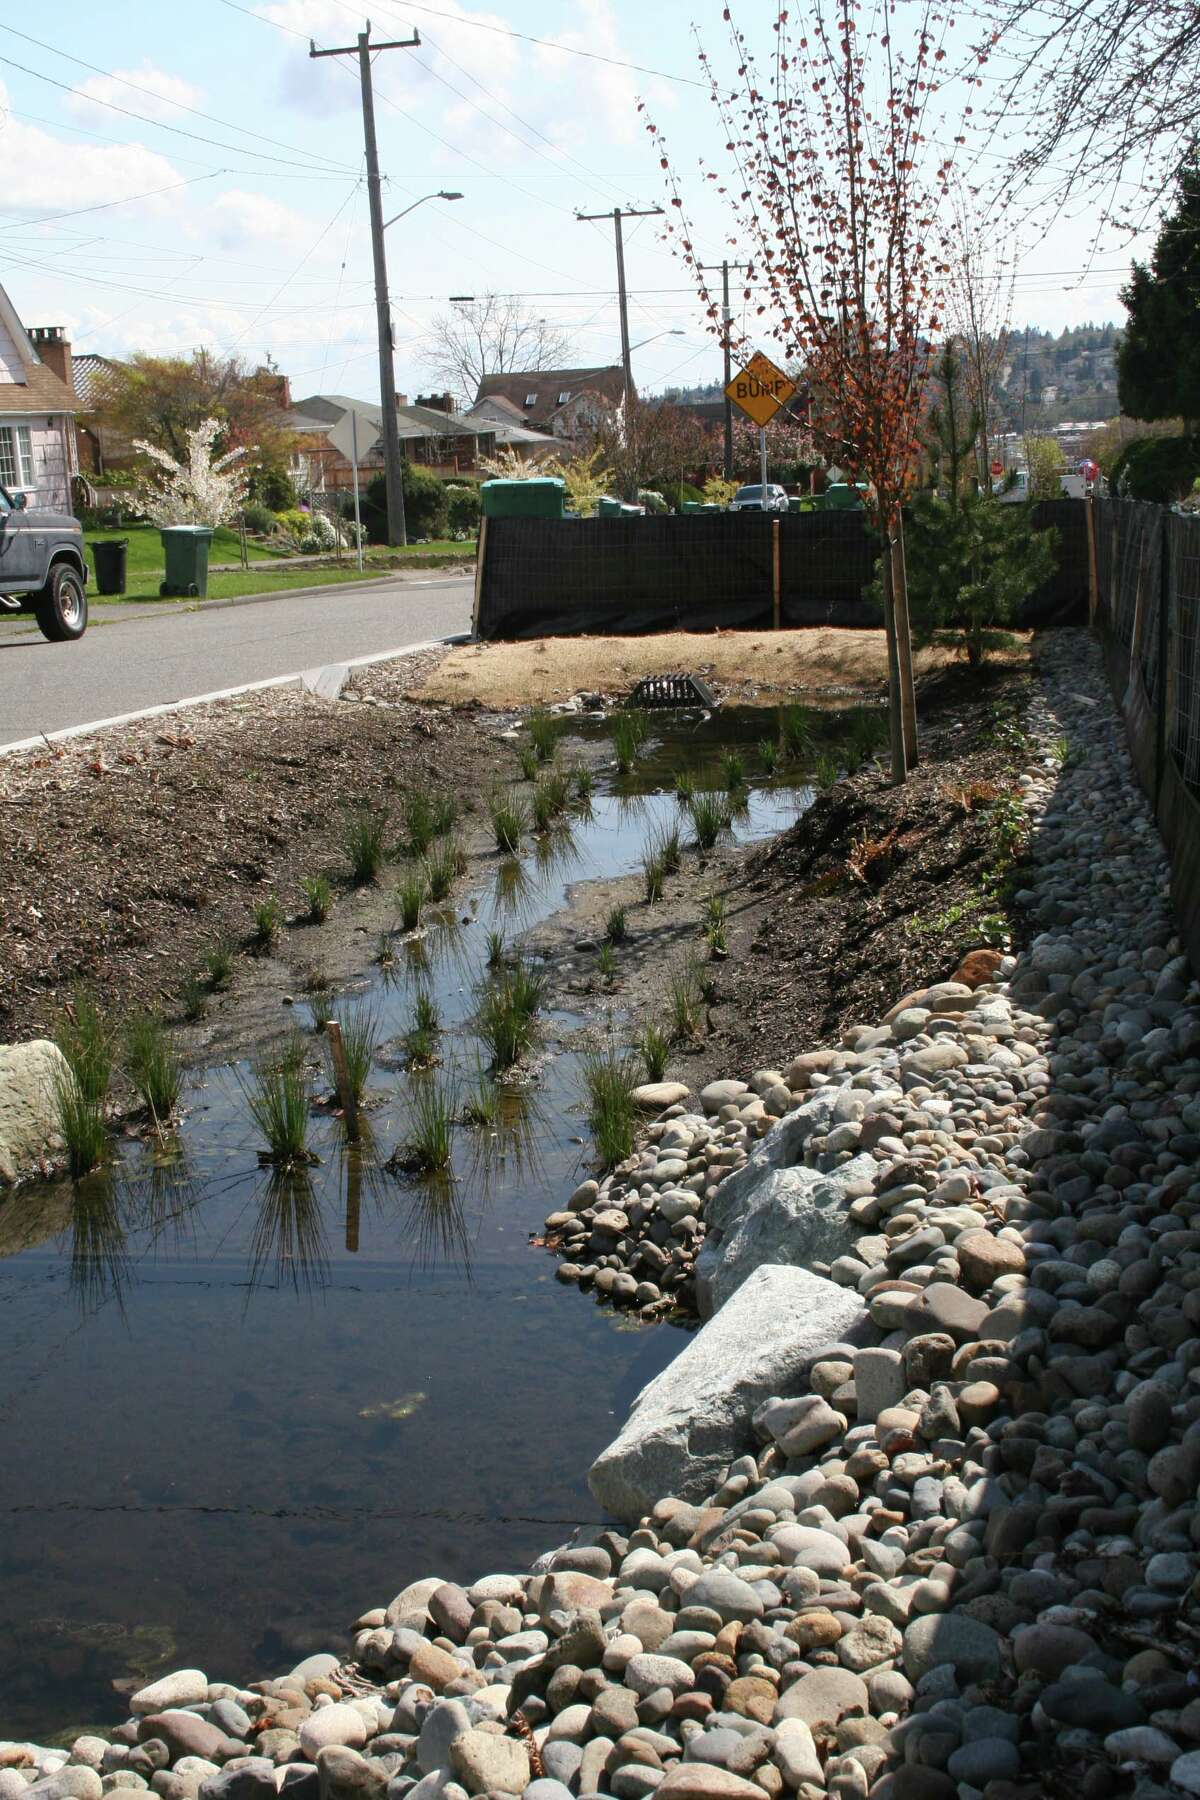 Rain gardens in Ballard have become muddy ponds, not the green solution to runoff the city had hoped. (Photo by Rita Hibbard)